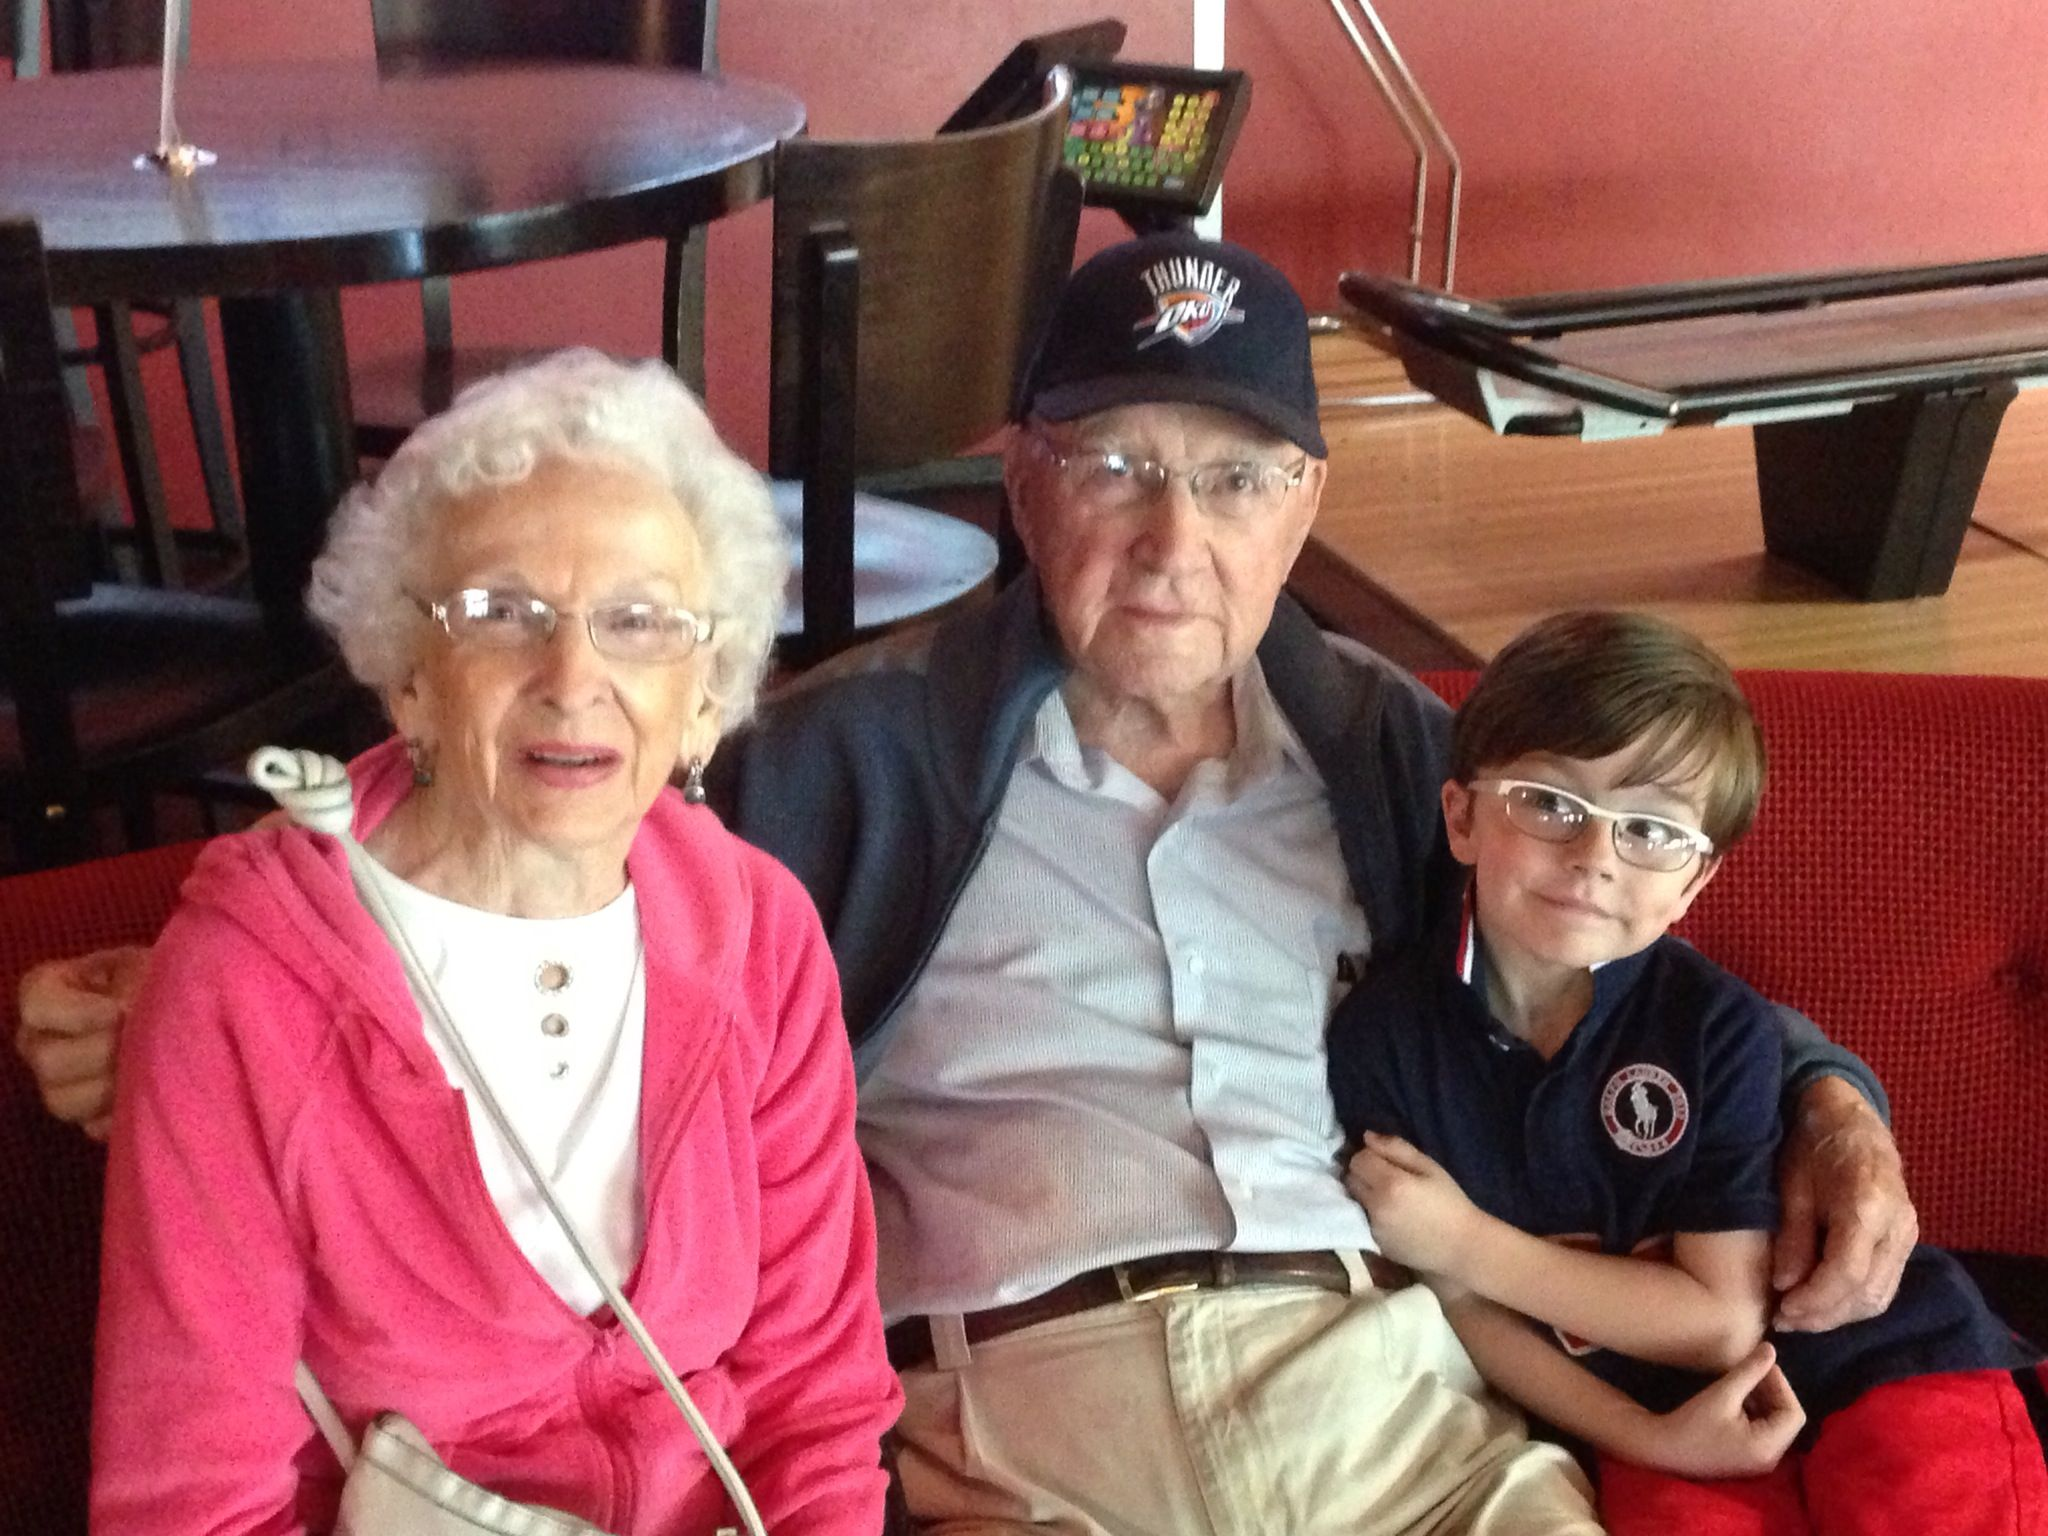 Great-grandparents are awesome!